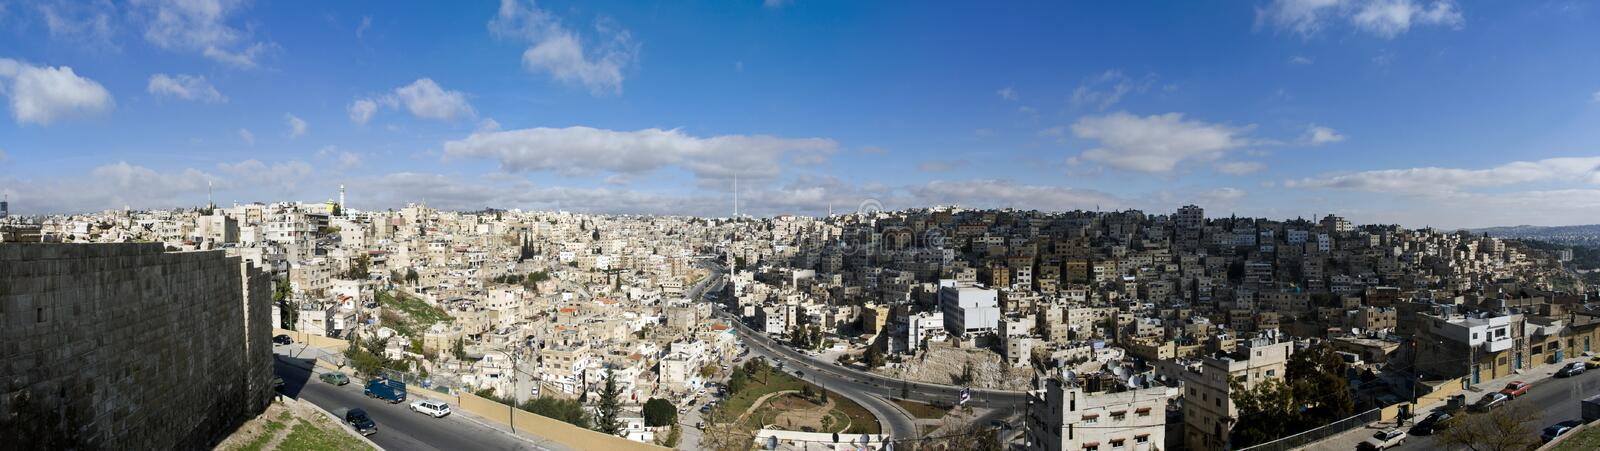 Amman, Jordan royalty free stock photo